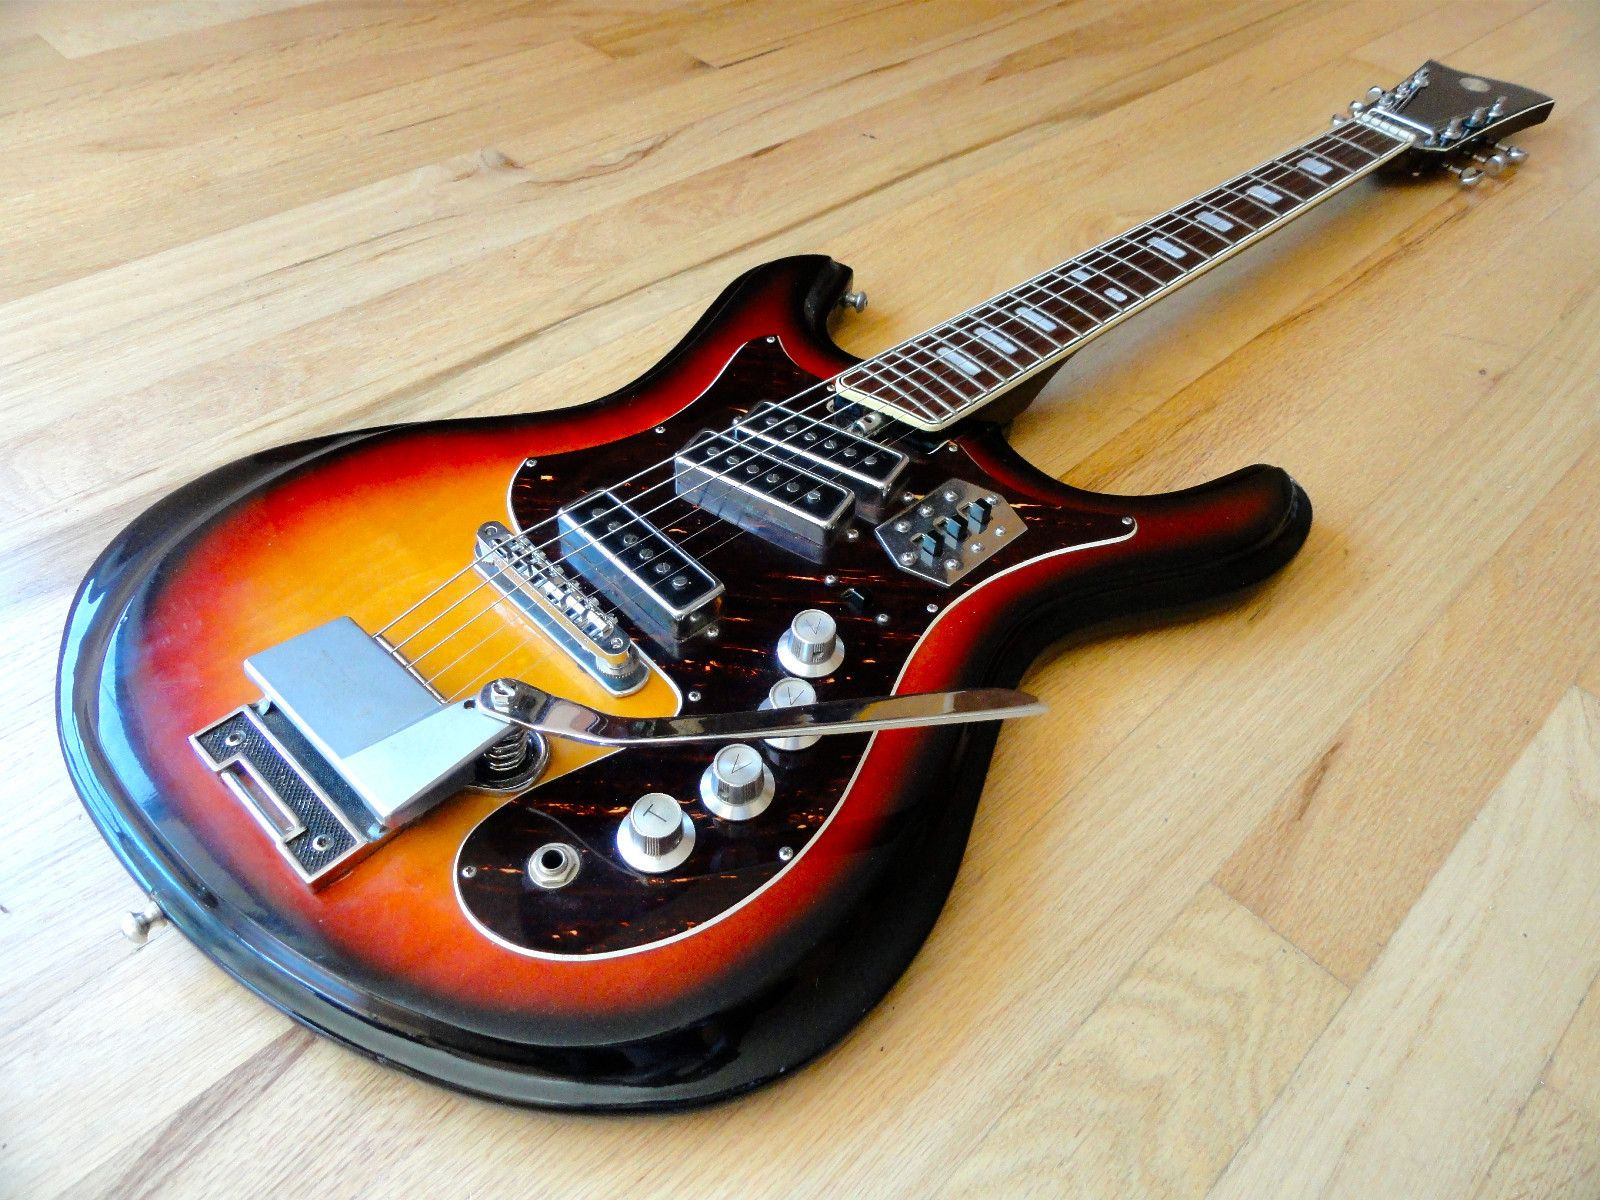 Teisco Spectrum 4 Wiring Diagram Free Download Diagrams Mosrite Guitar Silvertone 1441 Vintage Electric By W Bass Hollow Body